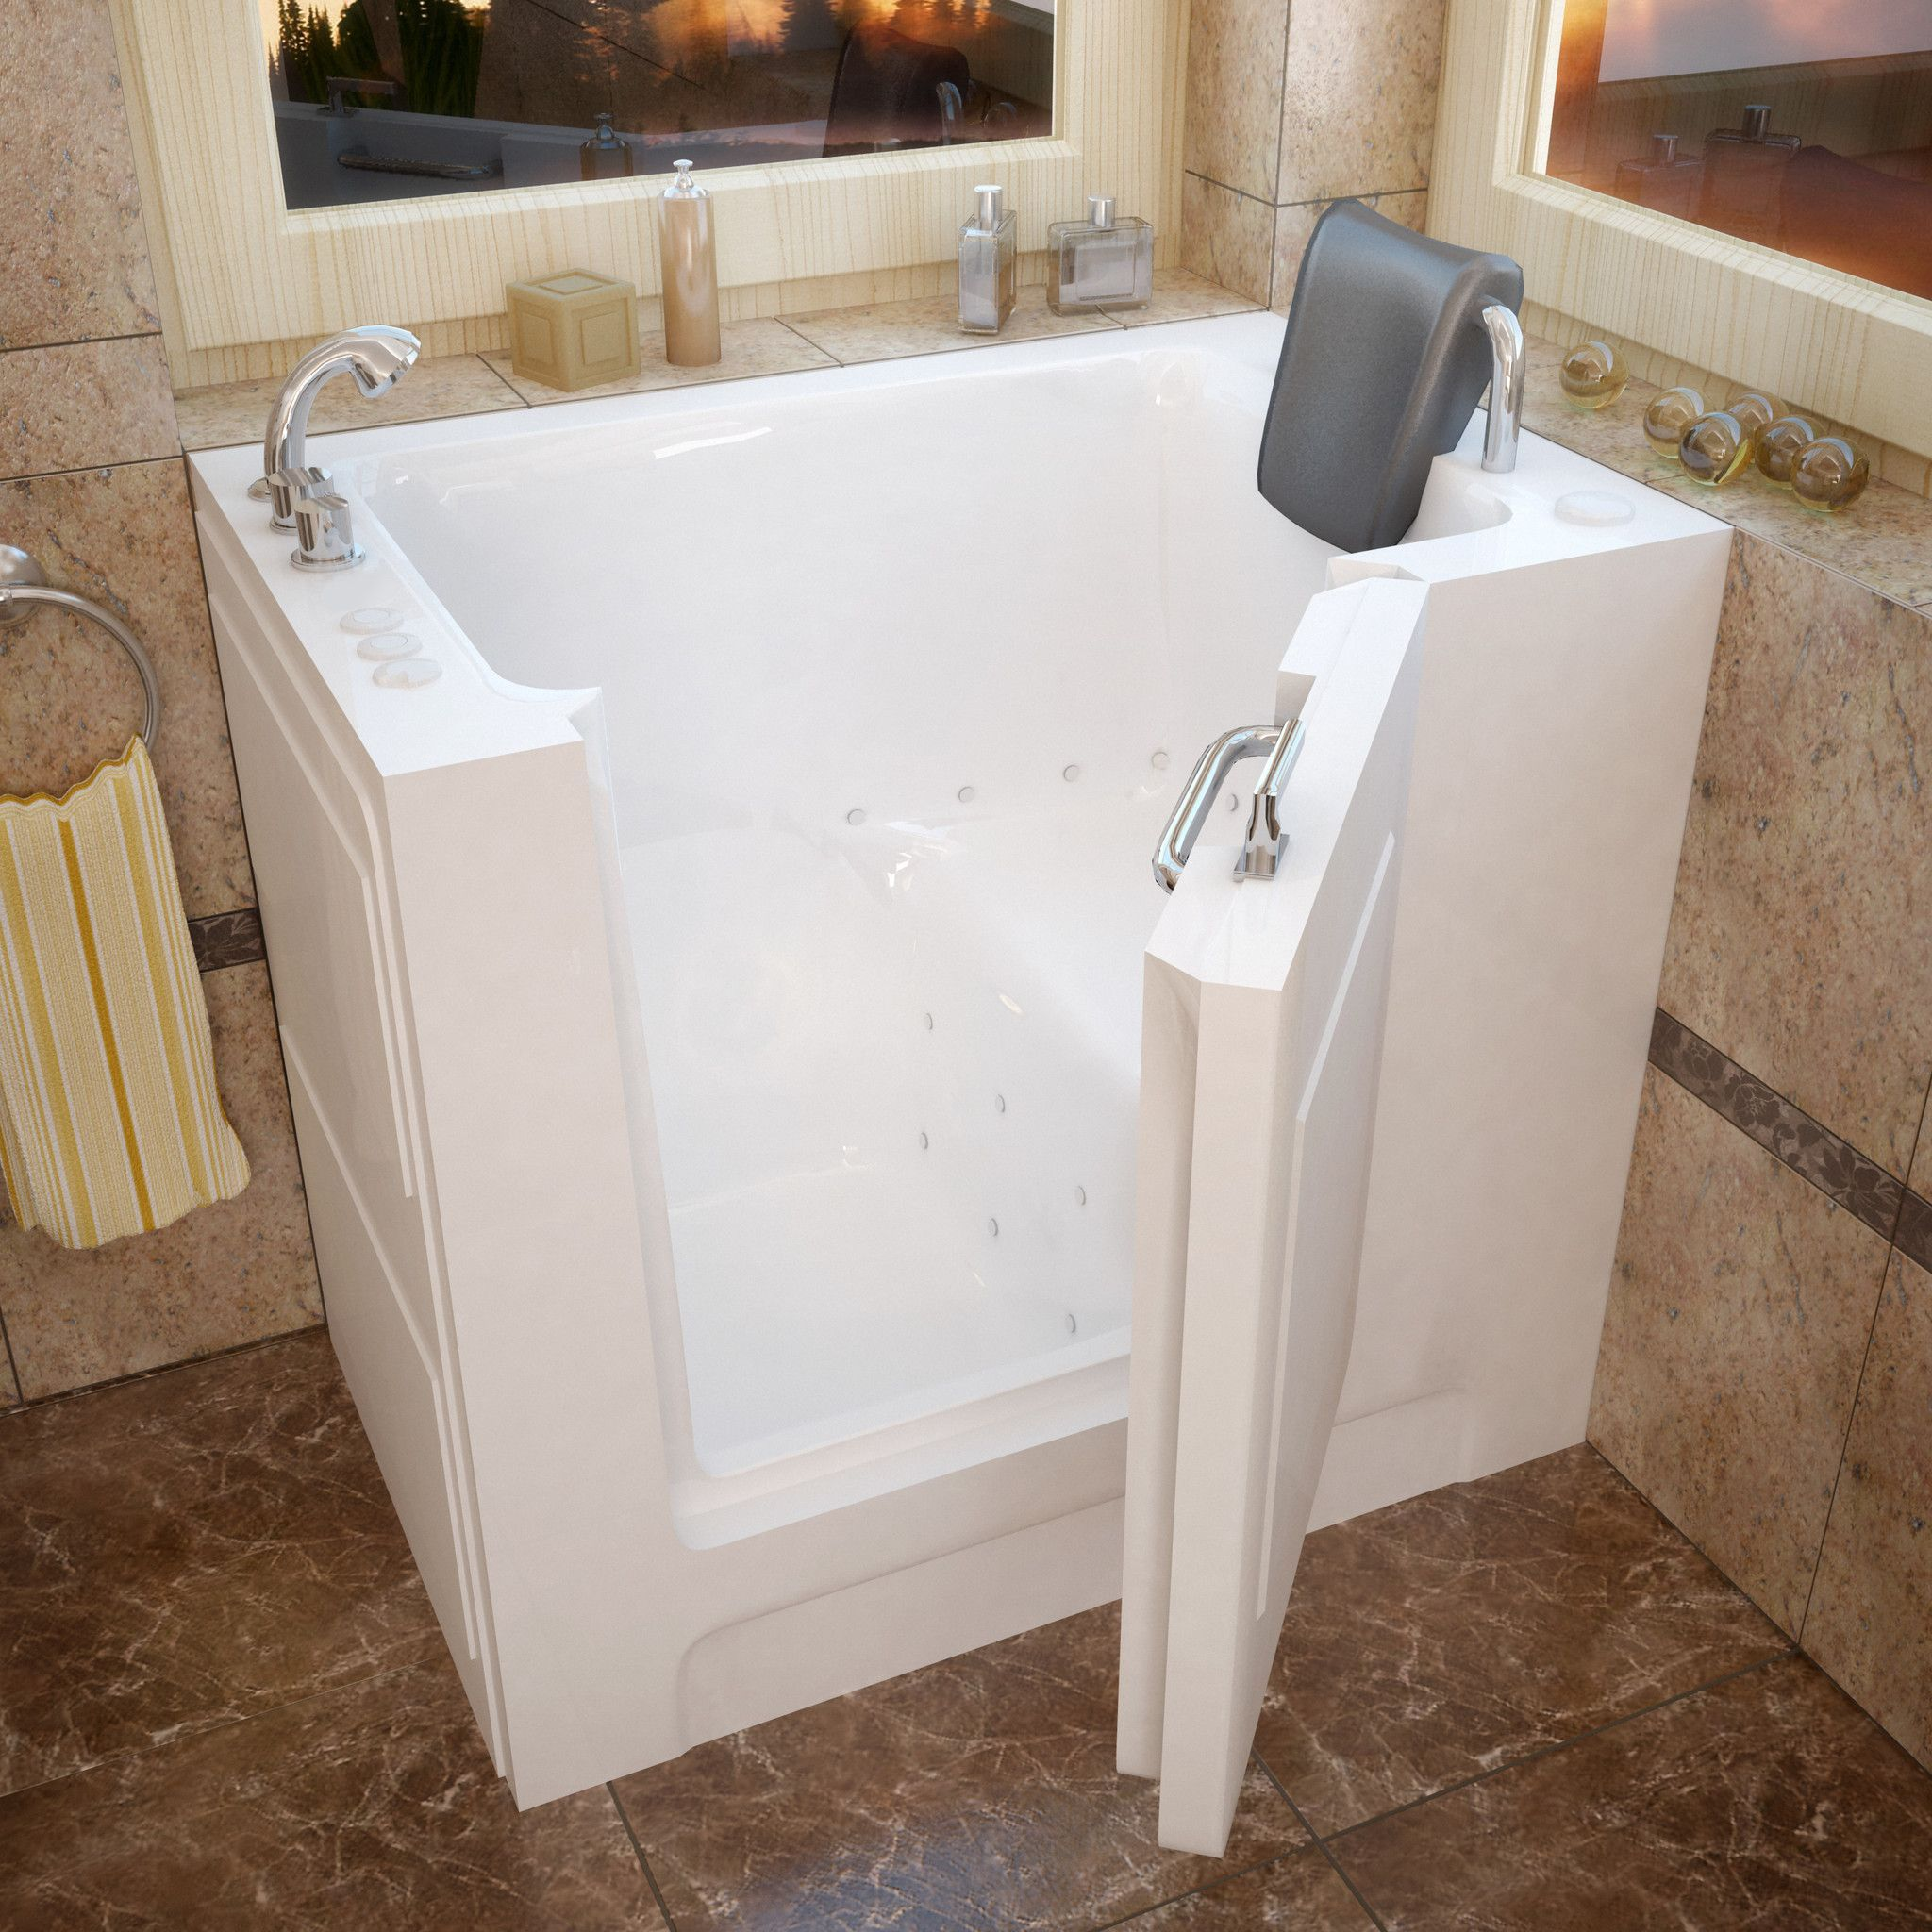 Venzi VZ2739LWA 27x39 Left Drain White Air Jetted Walk-in Bathtub ...